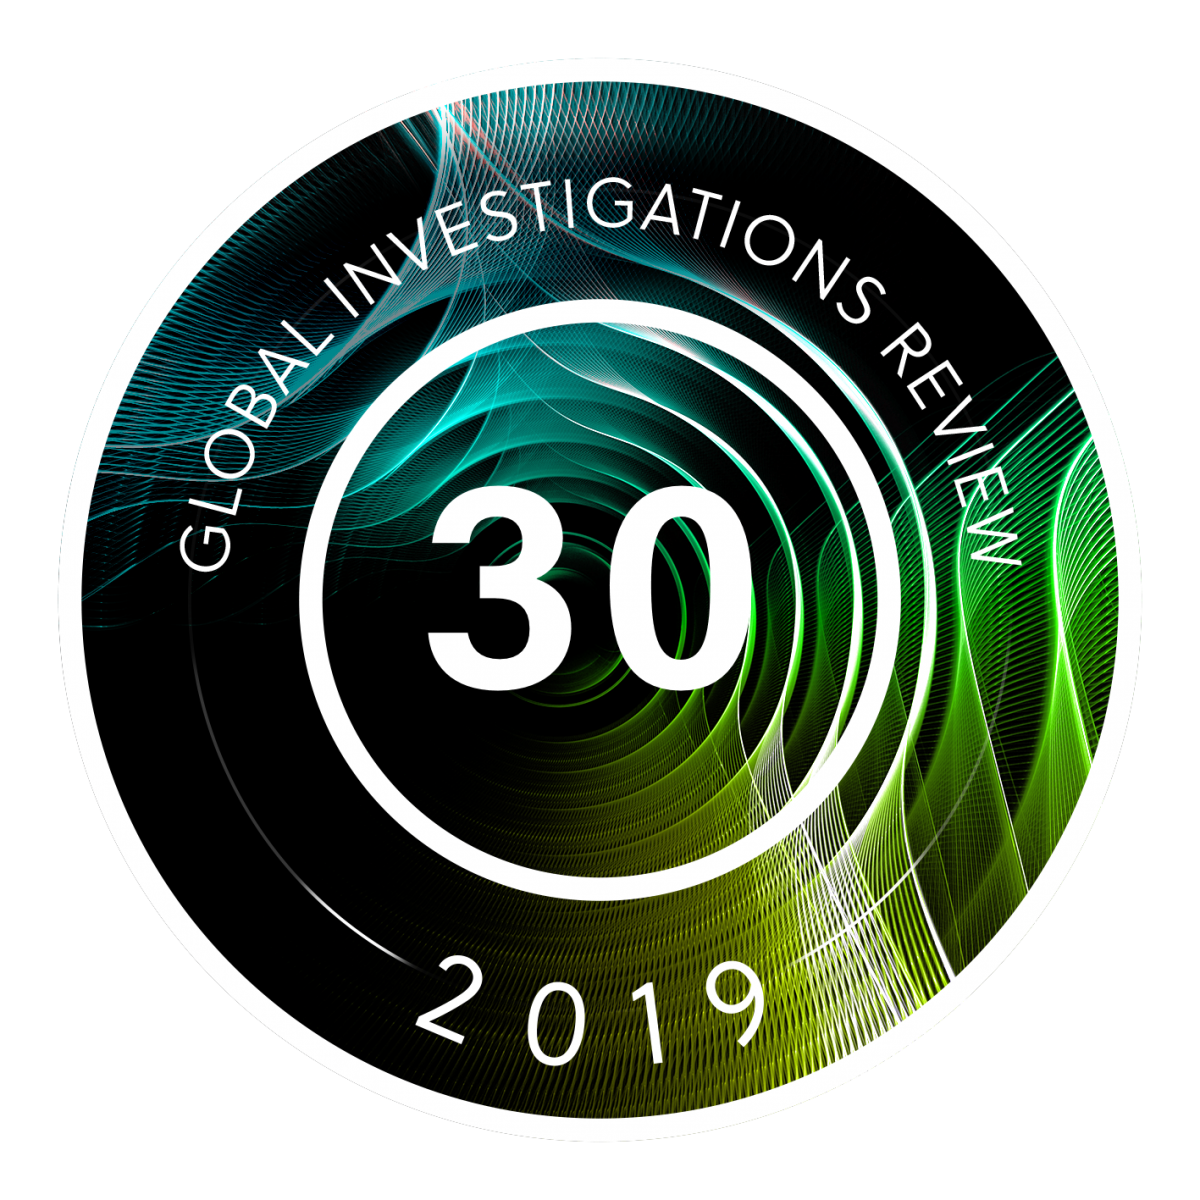 Global Investigations Review GIR 30 2019 badge